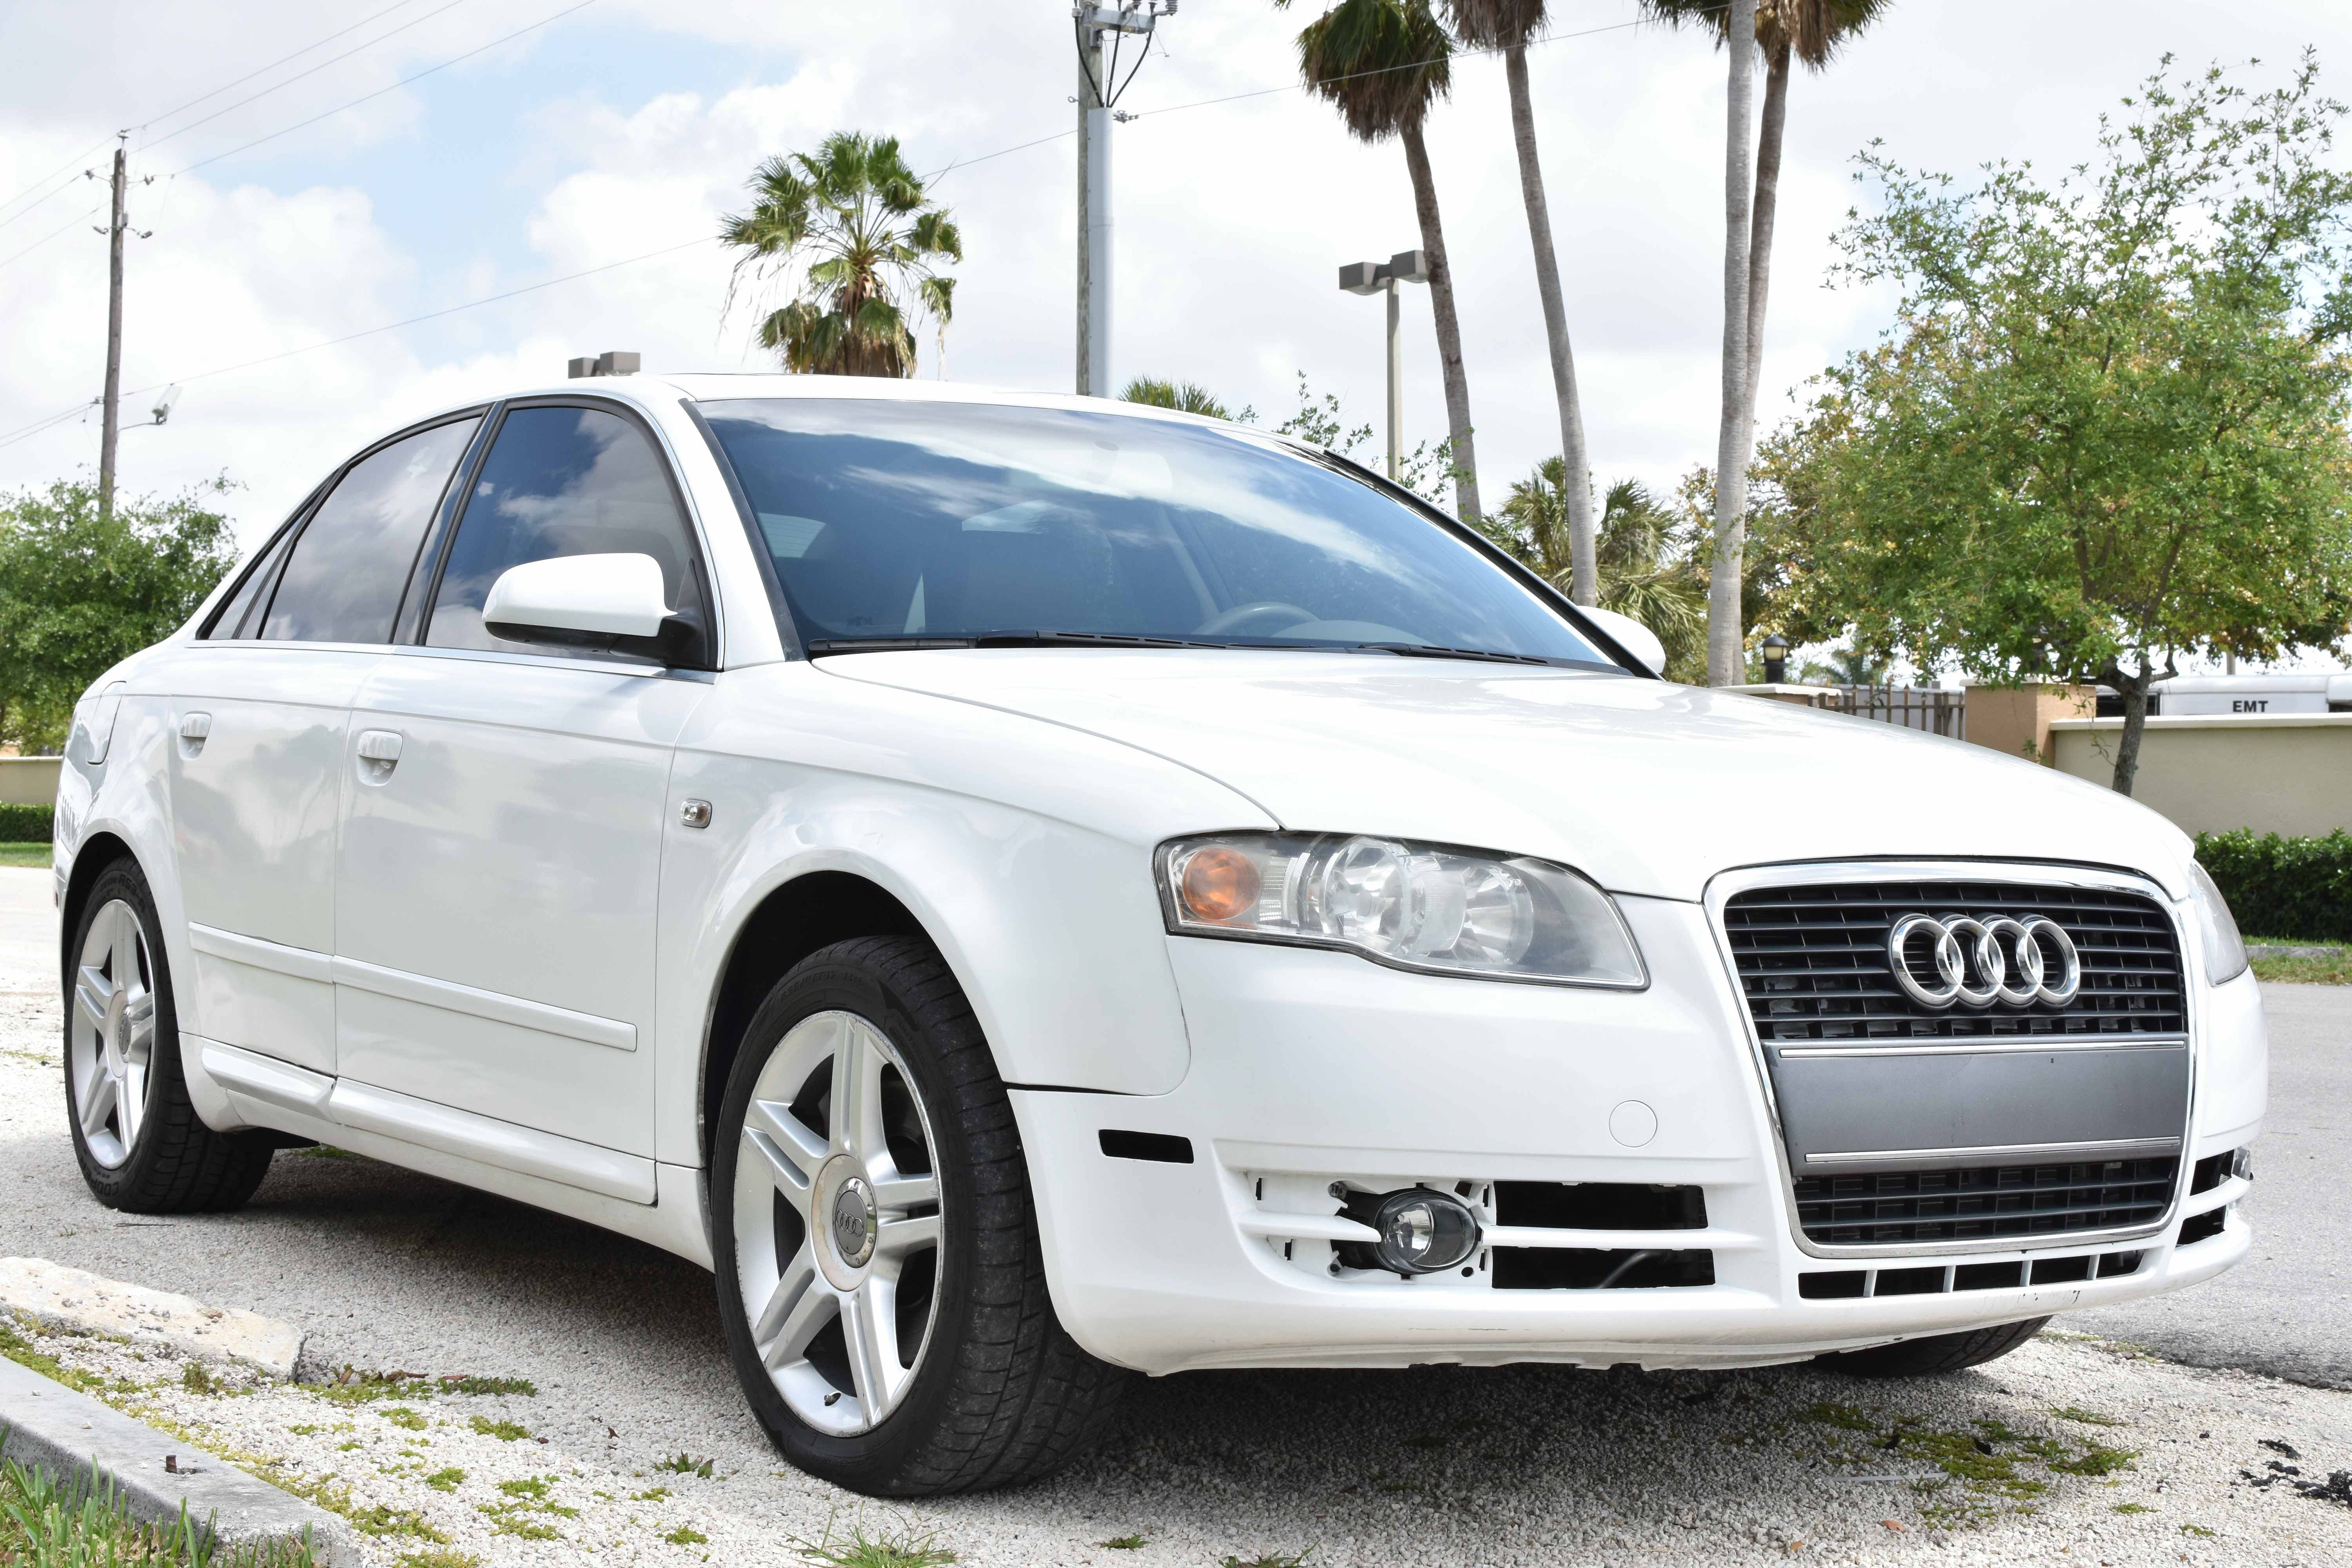 2008 AUDI A4 | CARS FOR SELL | Pinterest | Audi a4, Cars usa and Cars